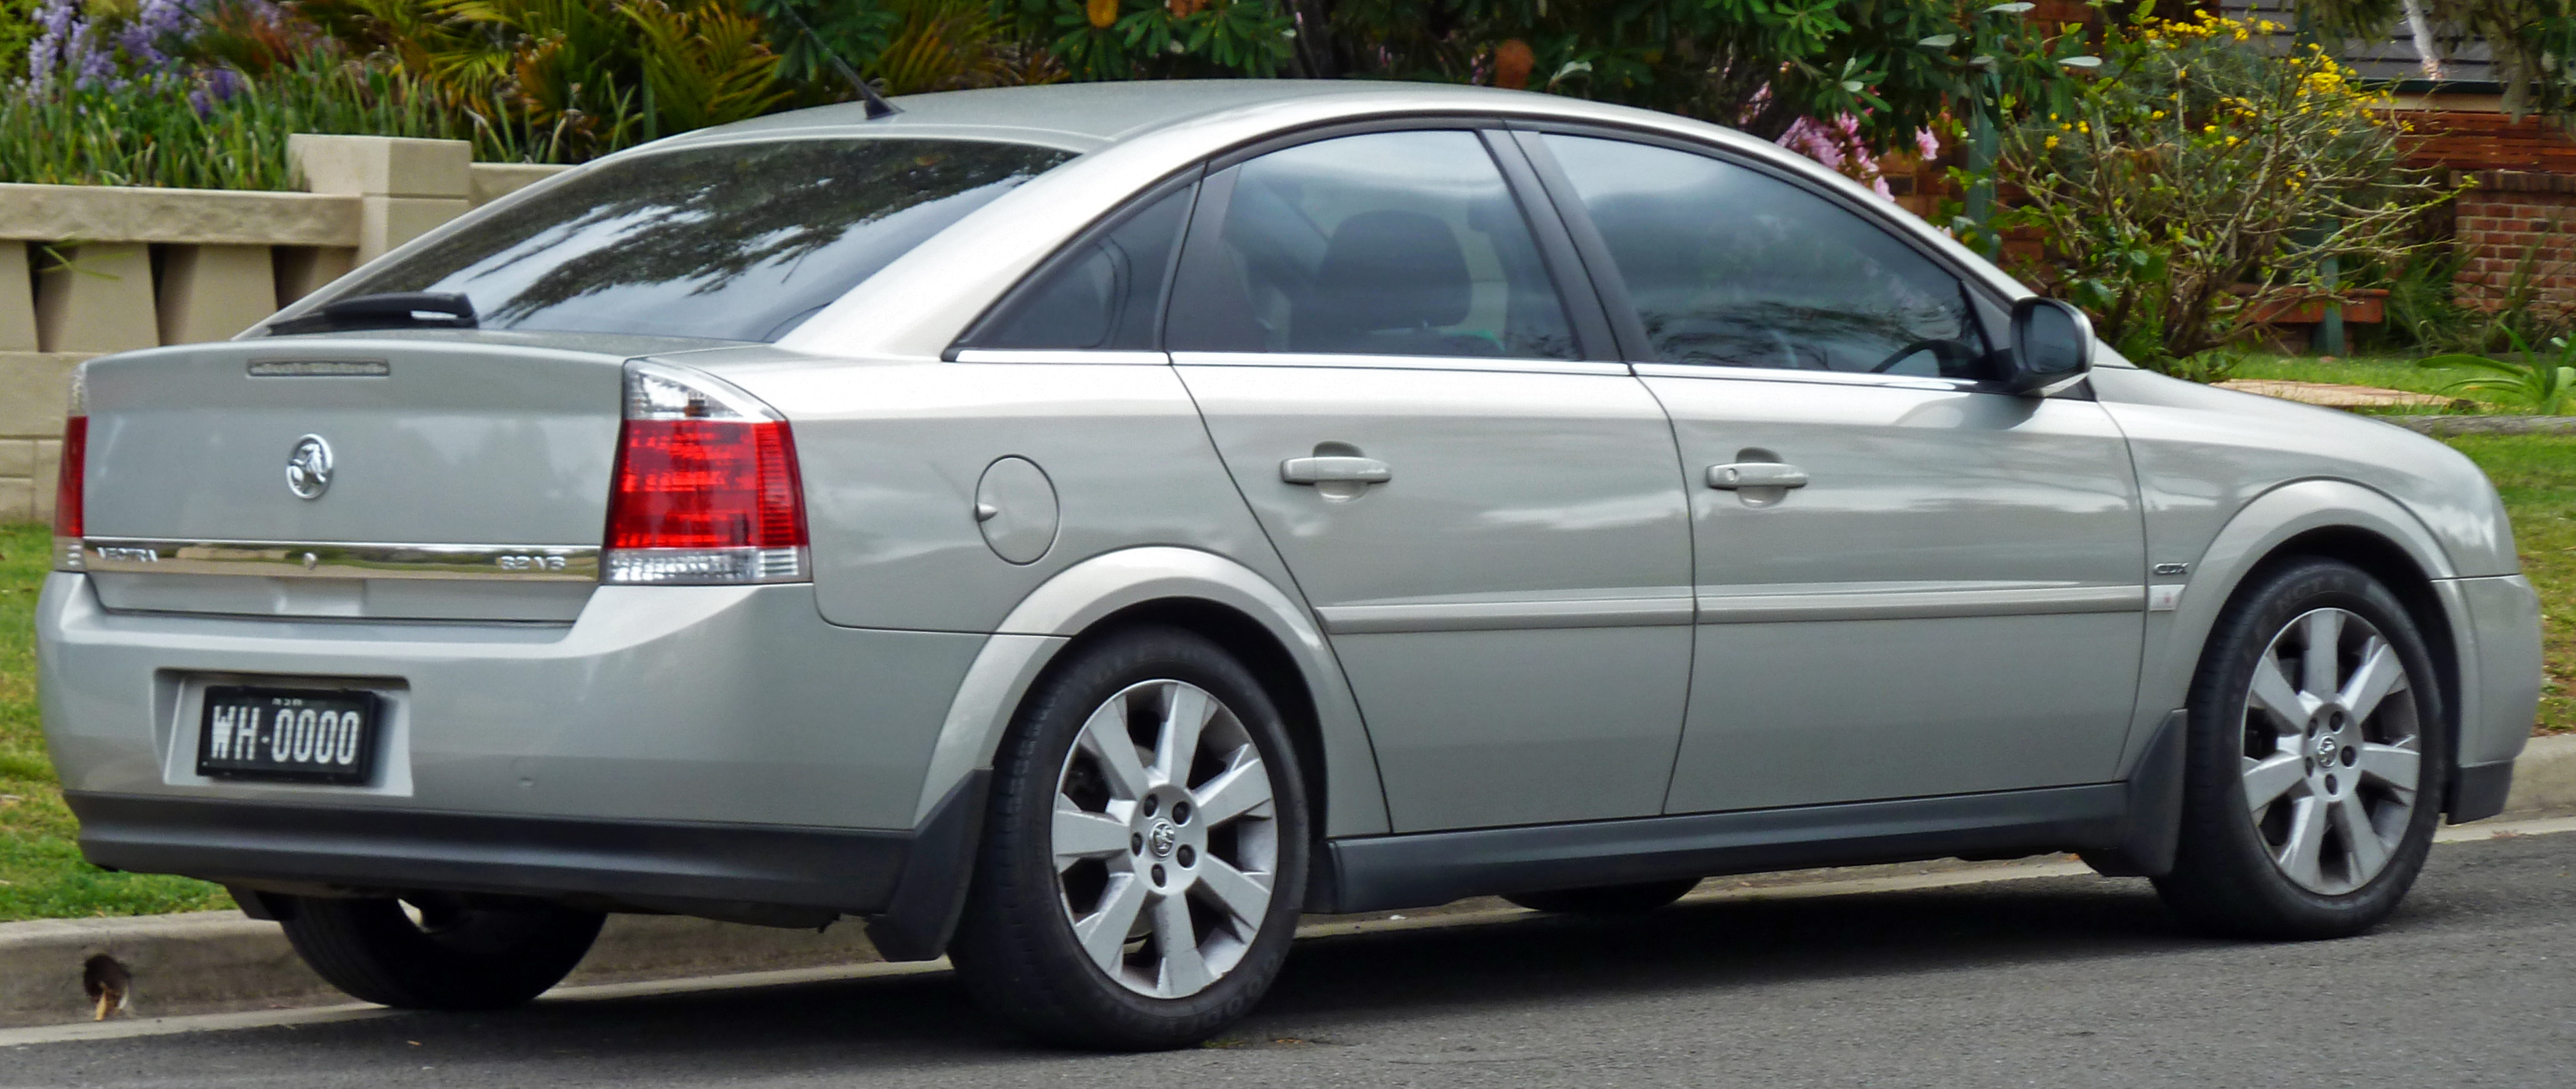 2005 Holden Vectra #11